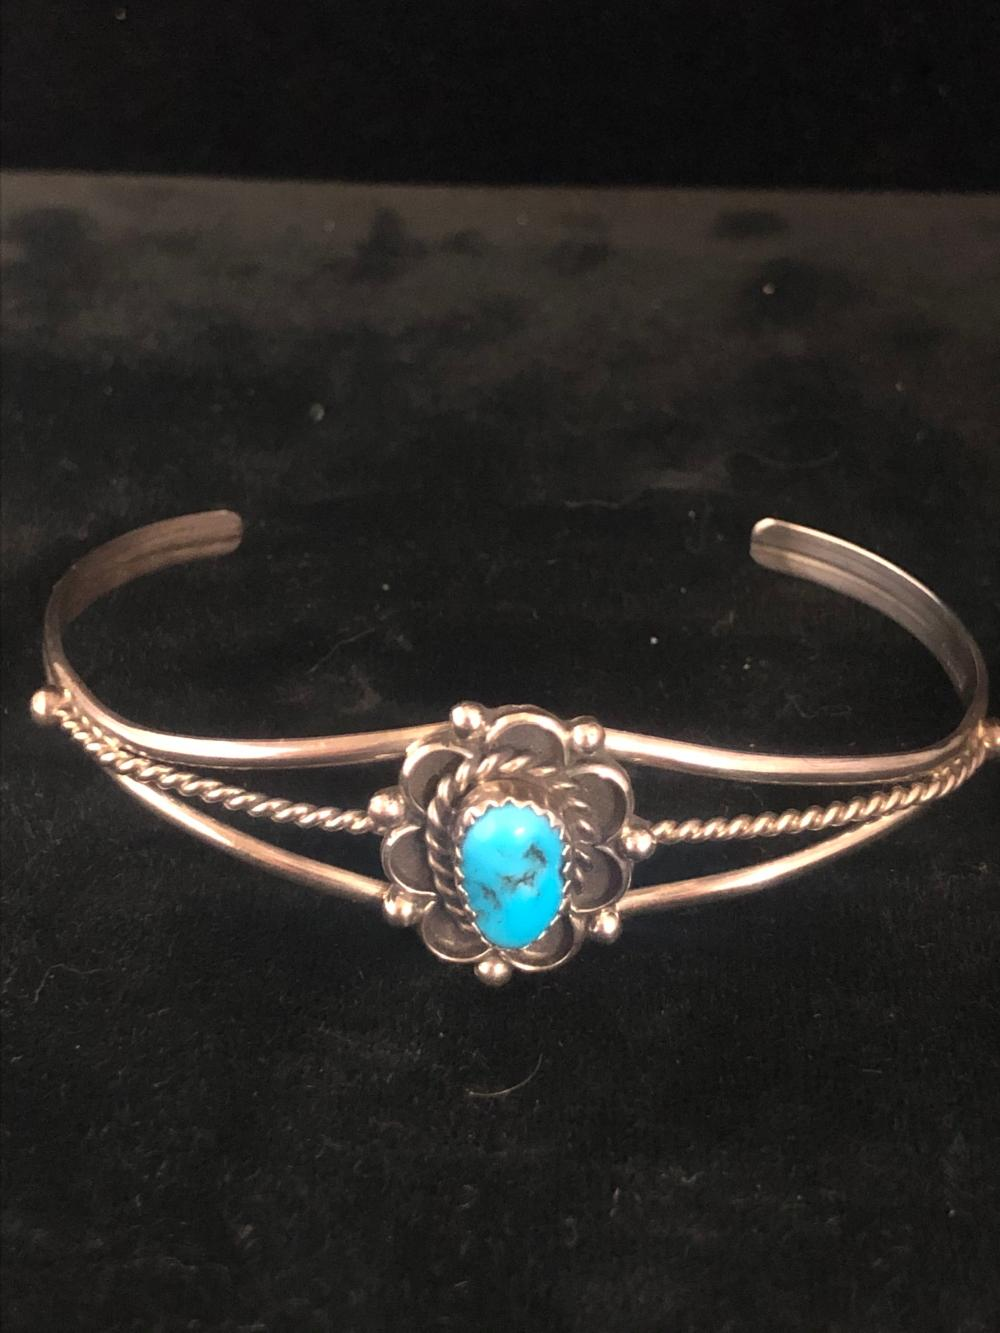 Turquoise stone sterling silver cuff bracelet